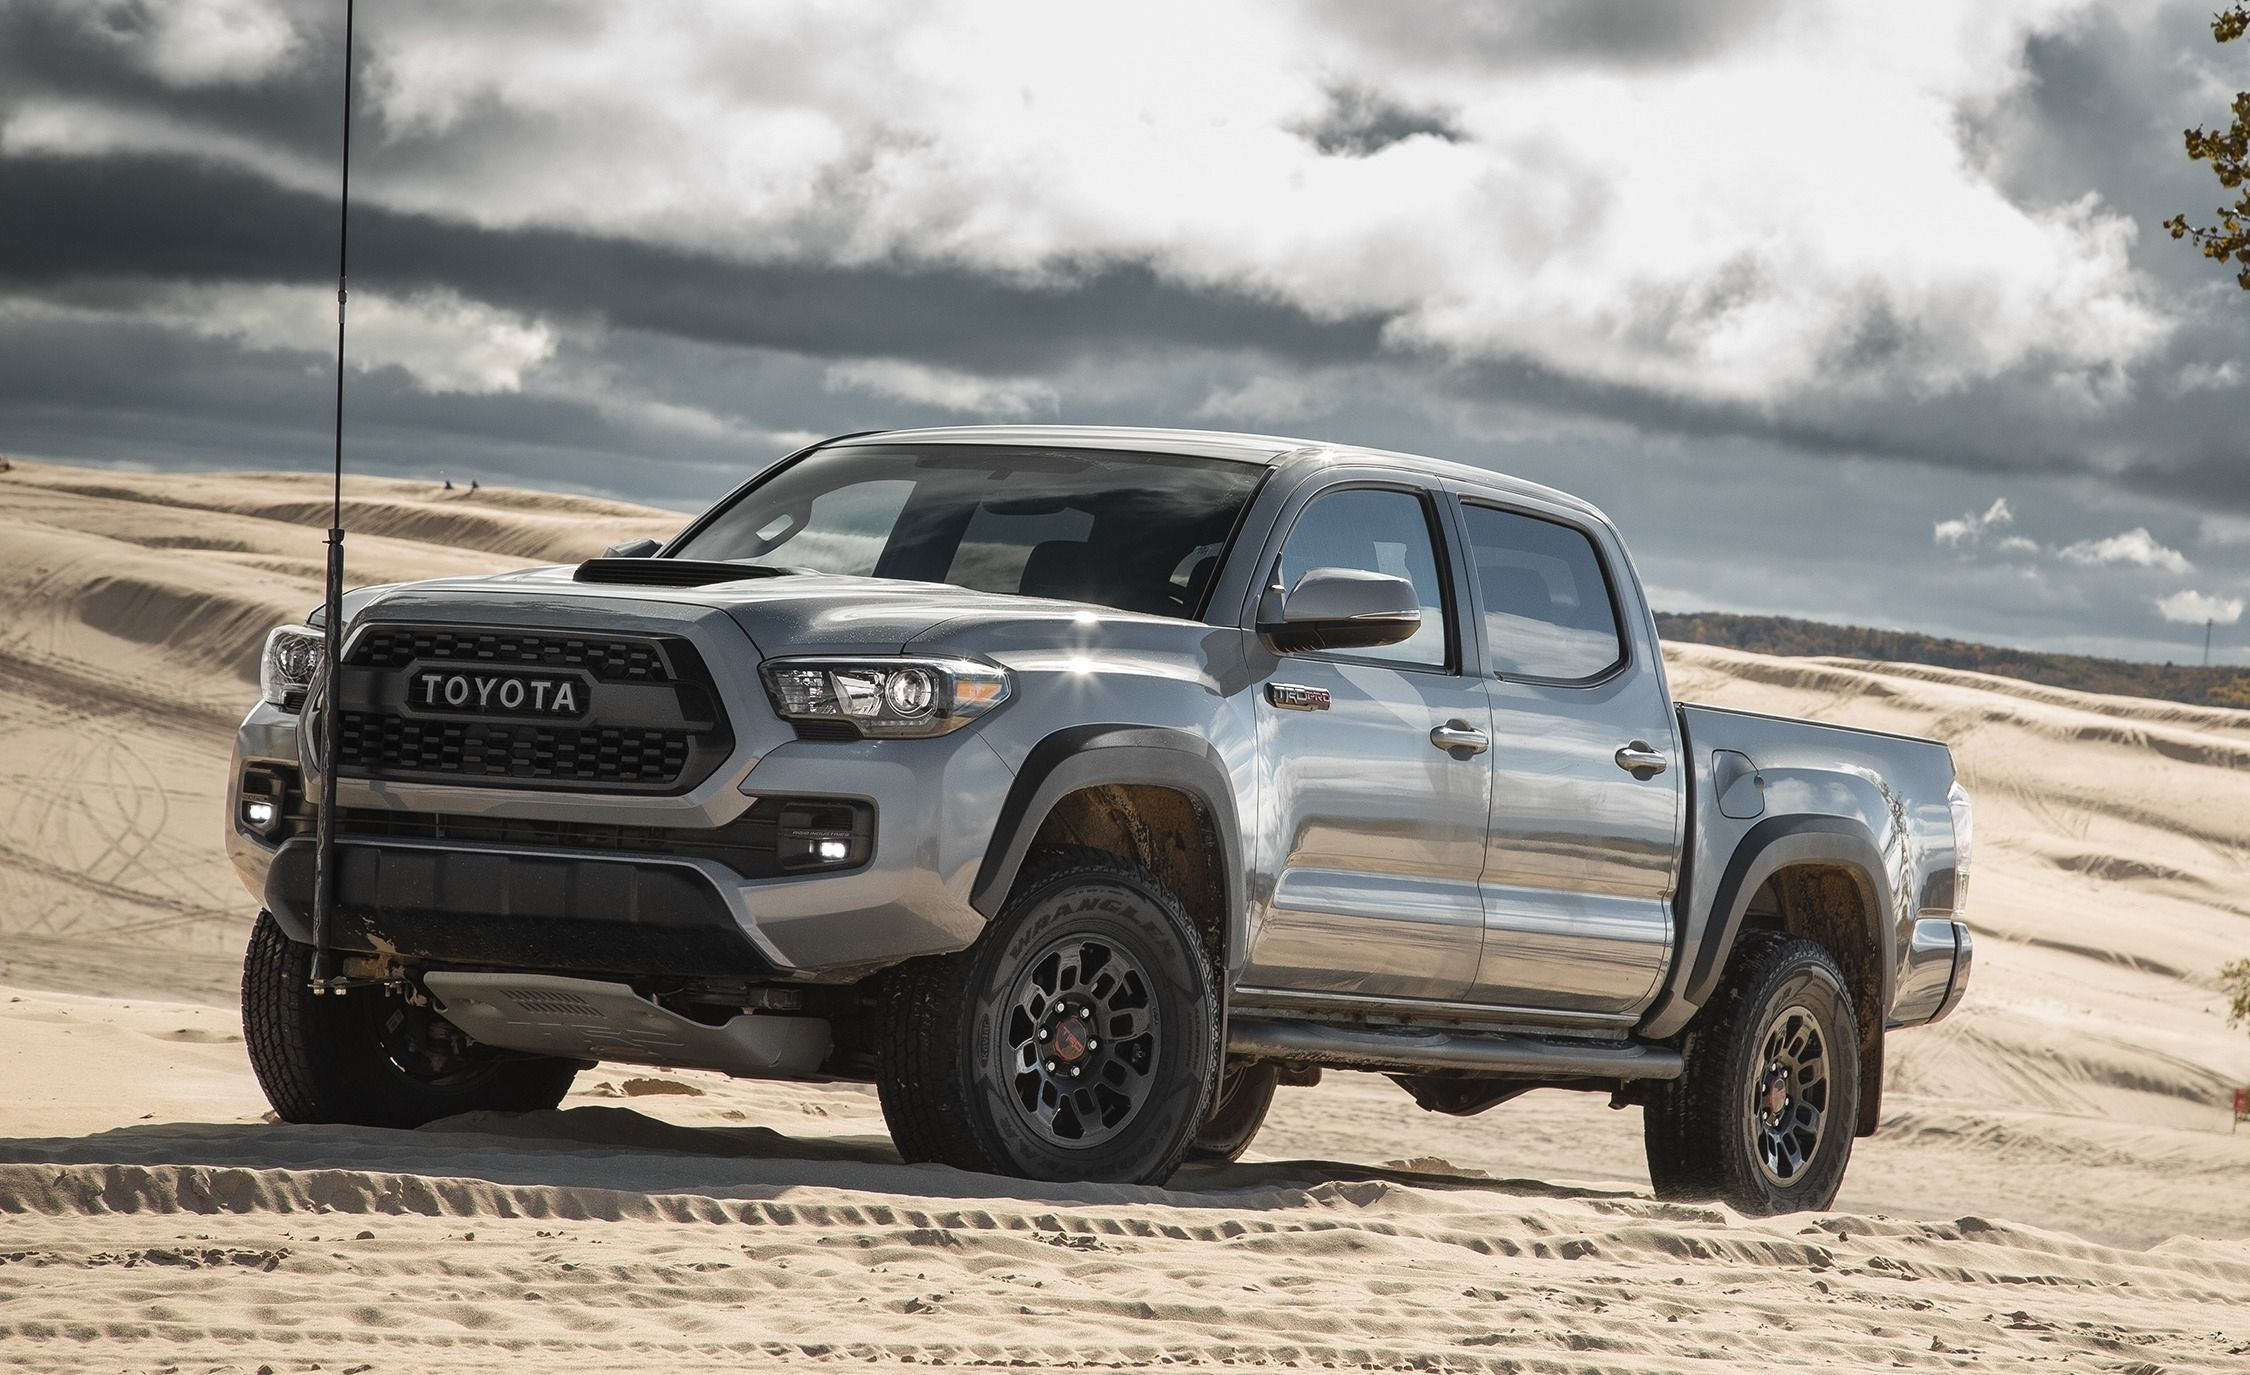 2020 Toyota Tacoma Diesel Trd Pro Overview